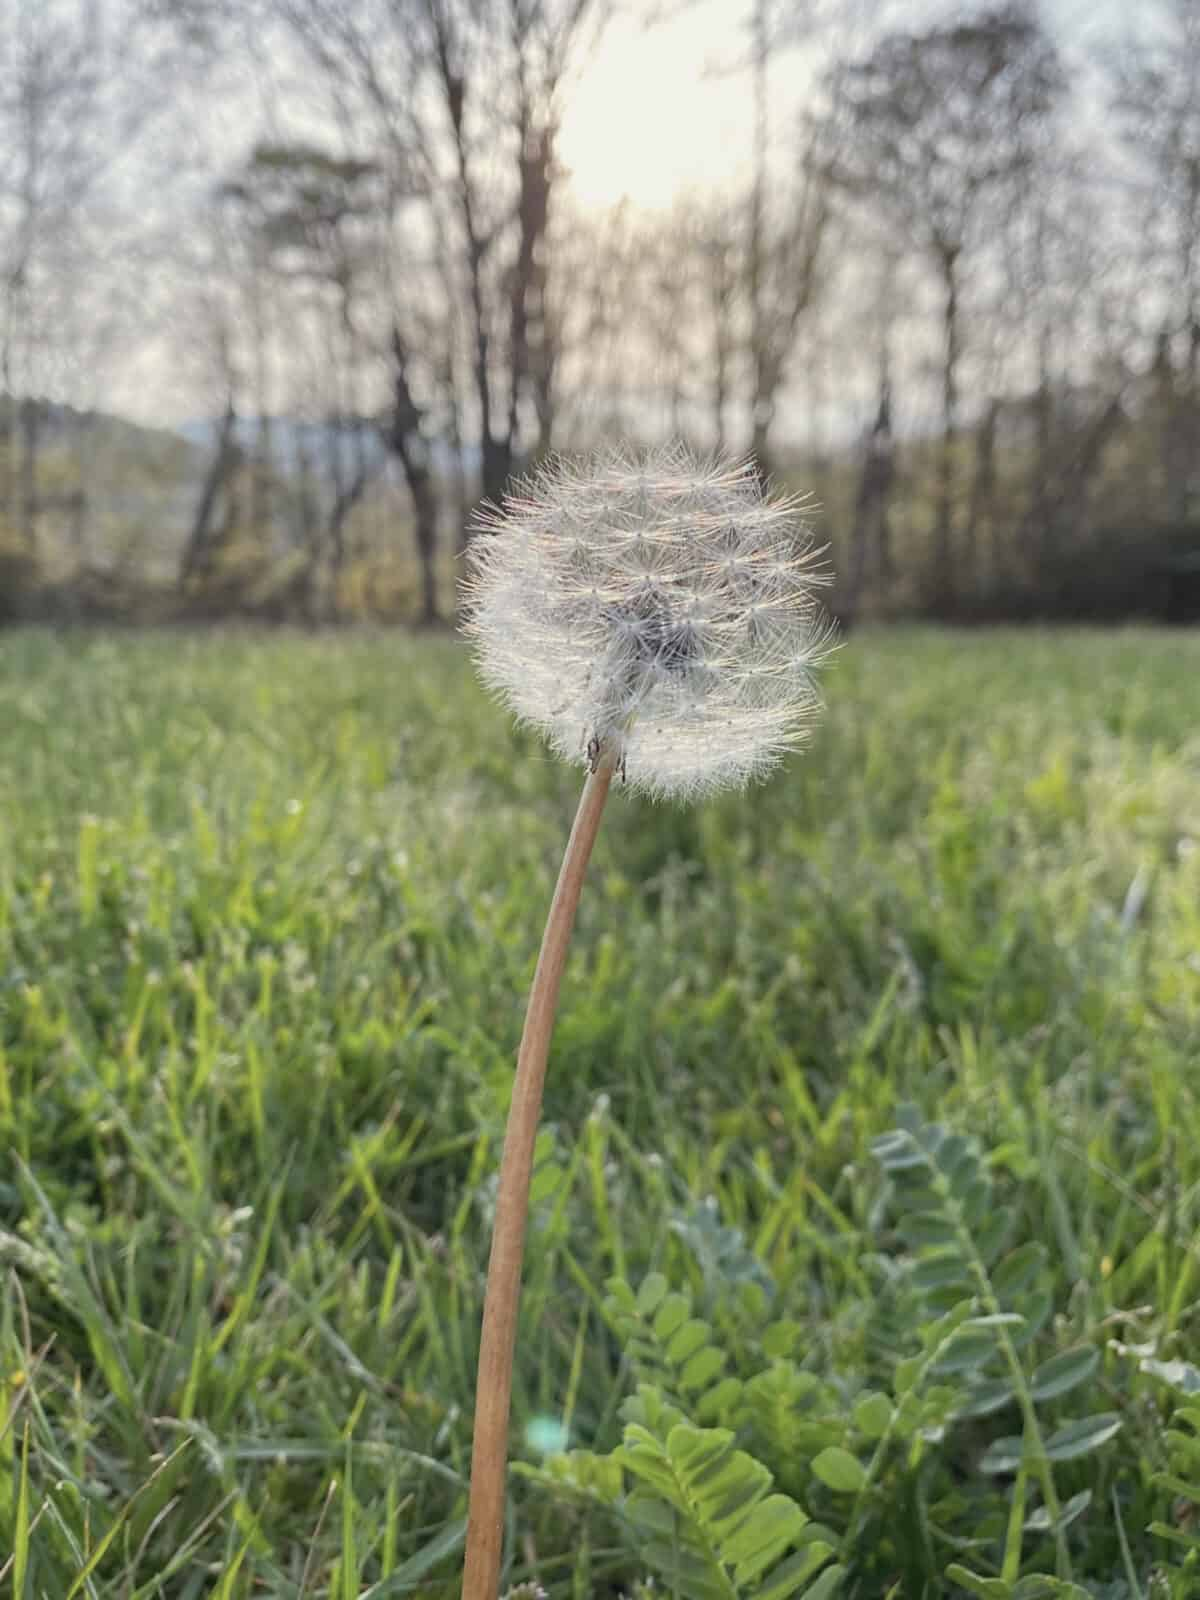 dandelion with grass and trees